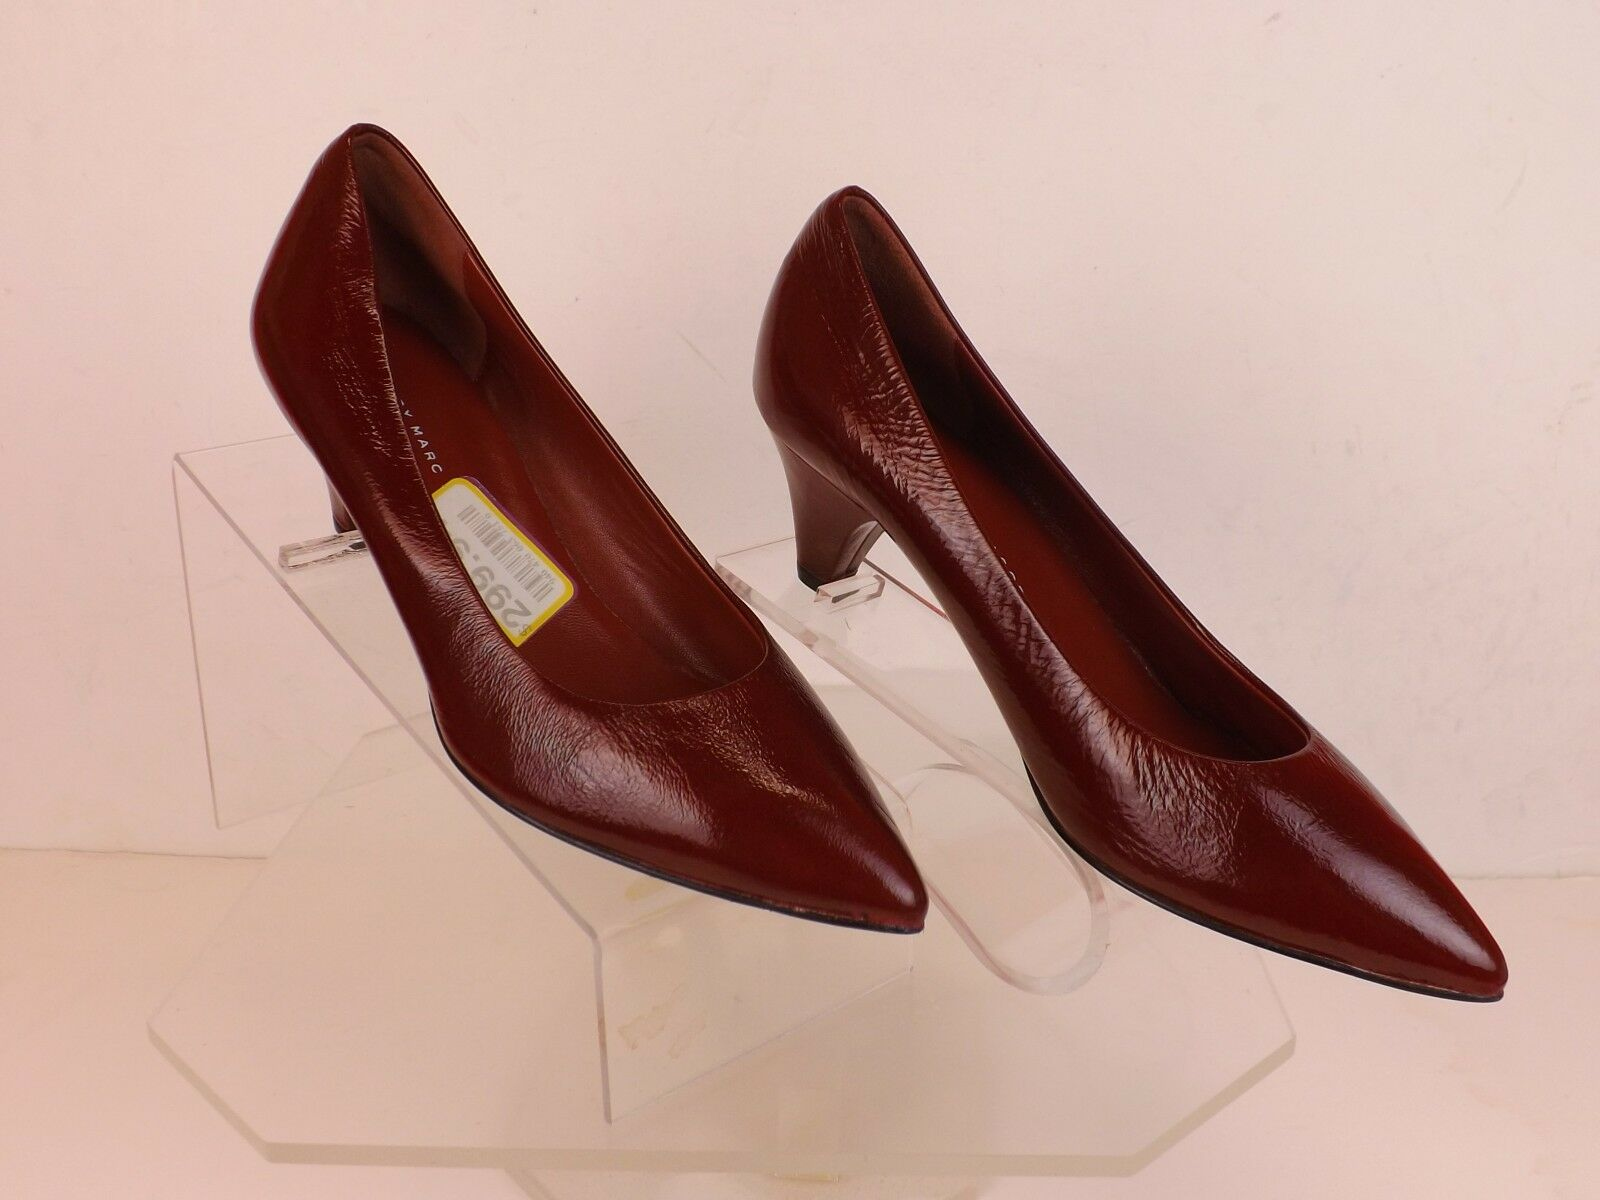 NIB MARC BY MARC JACOBS BURGUNDY LEATHER LOW HEEL CLASSIC PUMPS 37.5